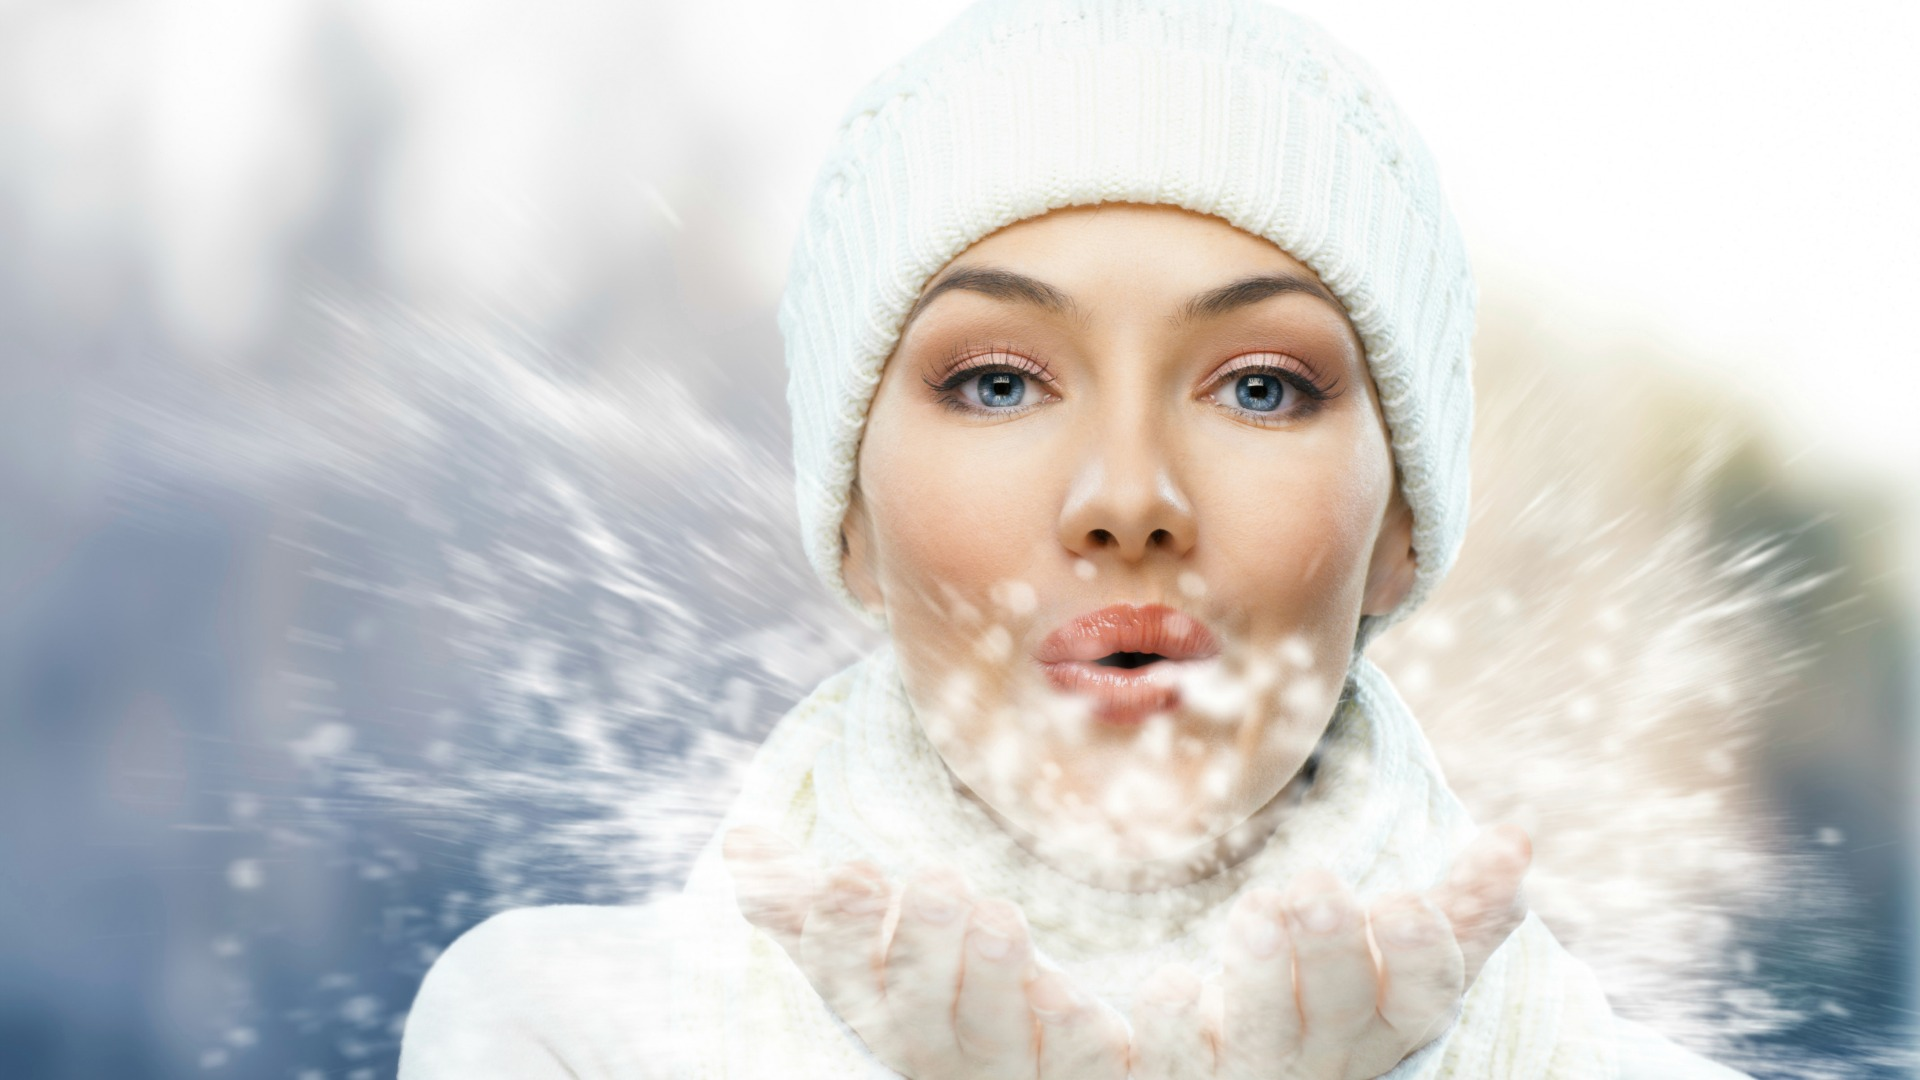 How to take care of the skin in winter